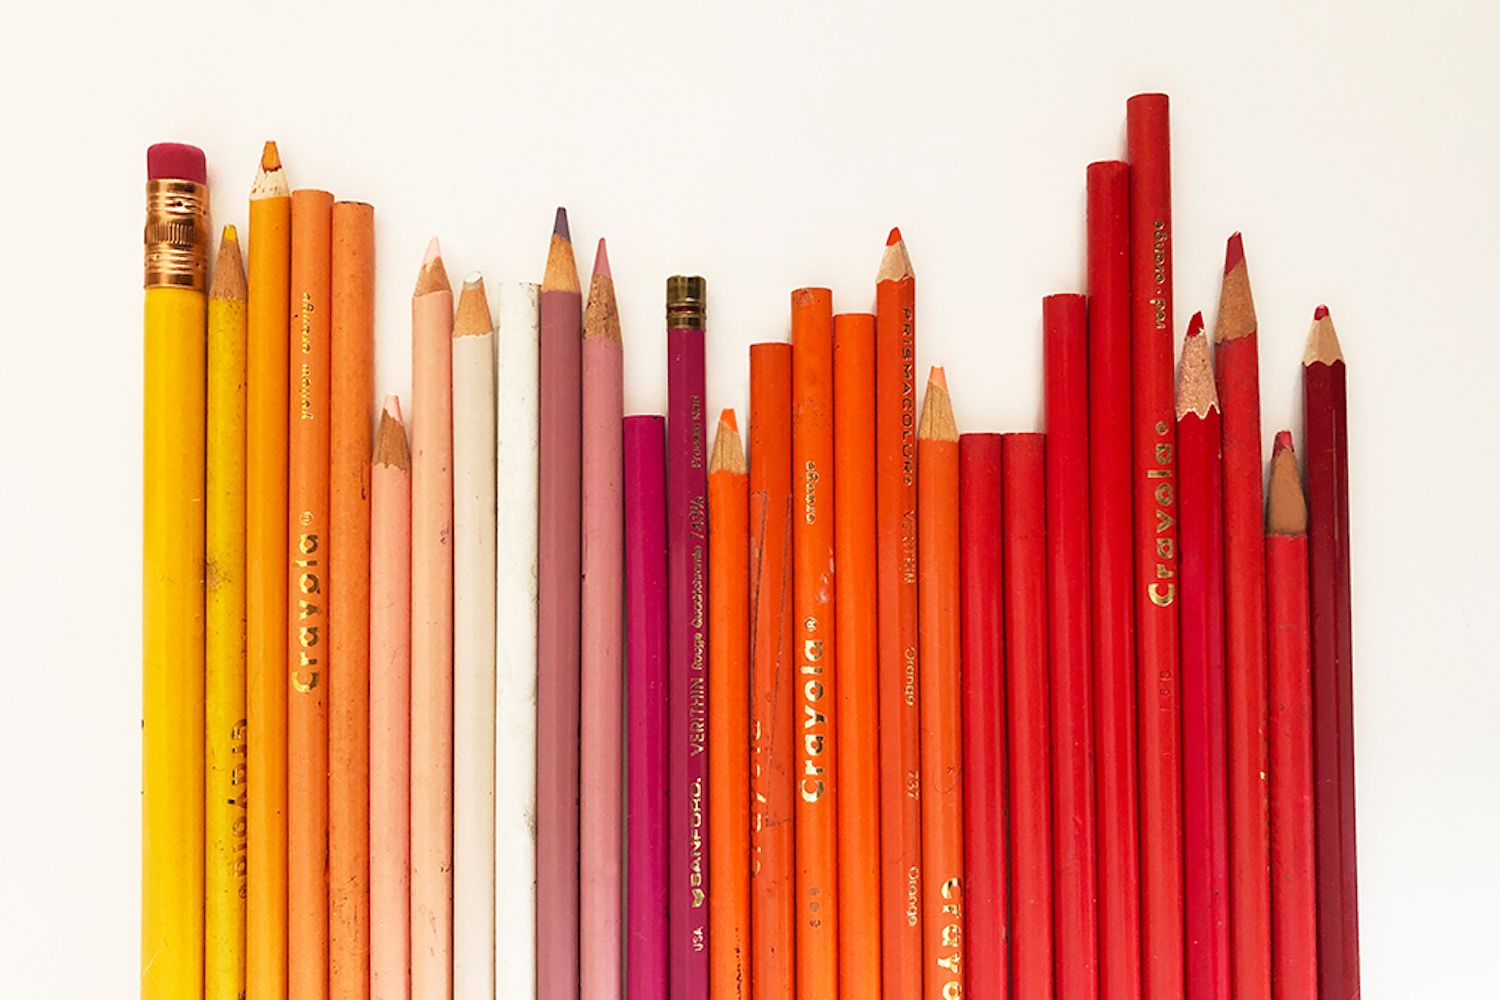 Image showing yellow, orange, pink and red colored pencils on a white table